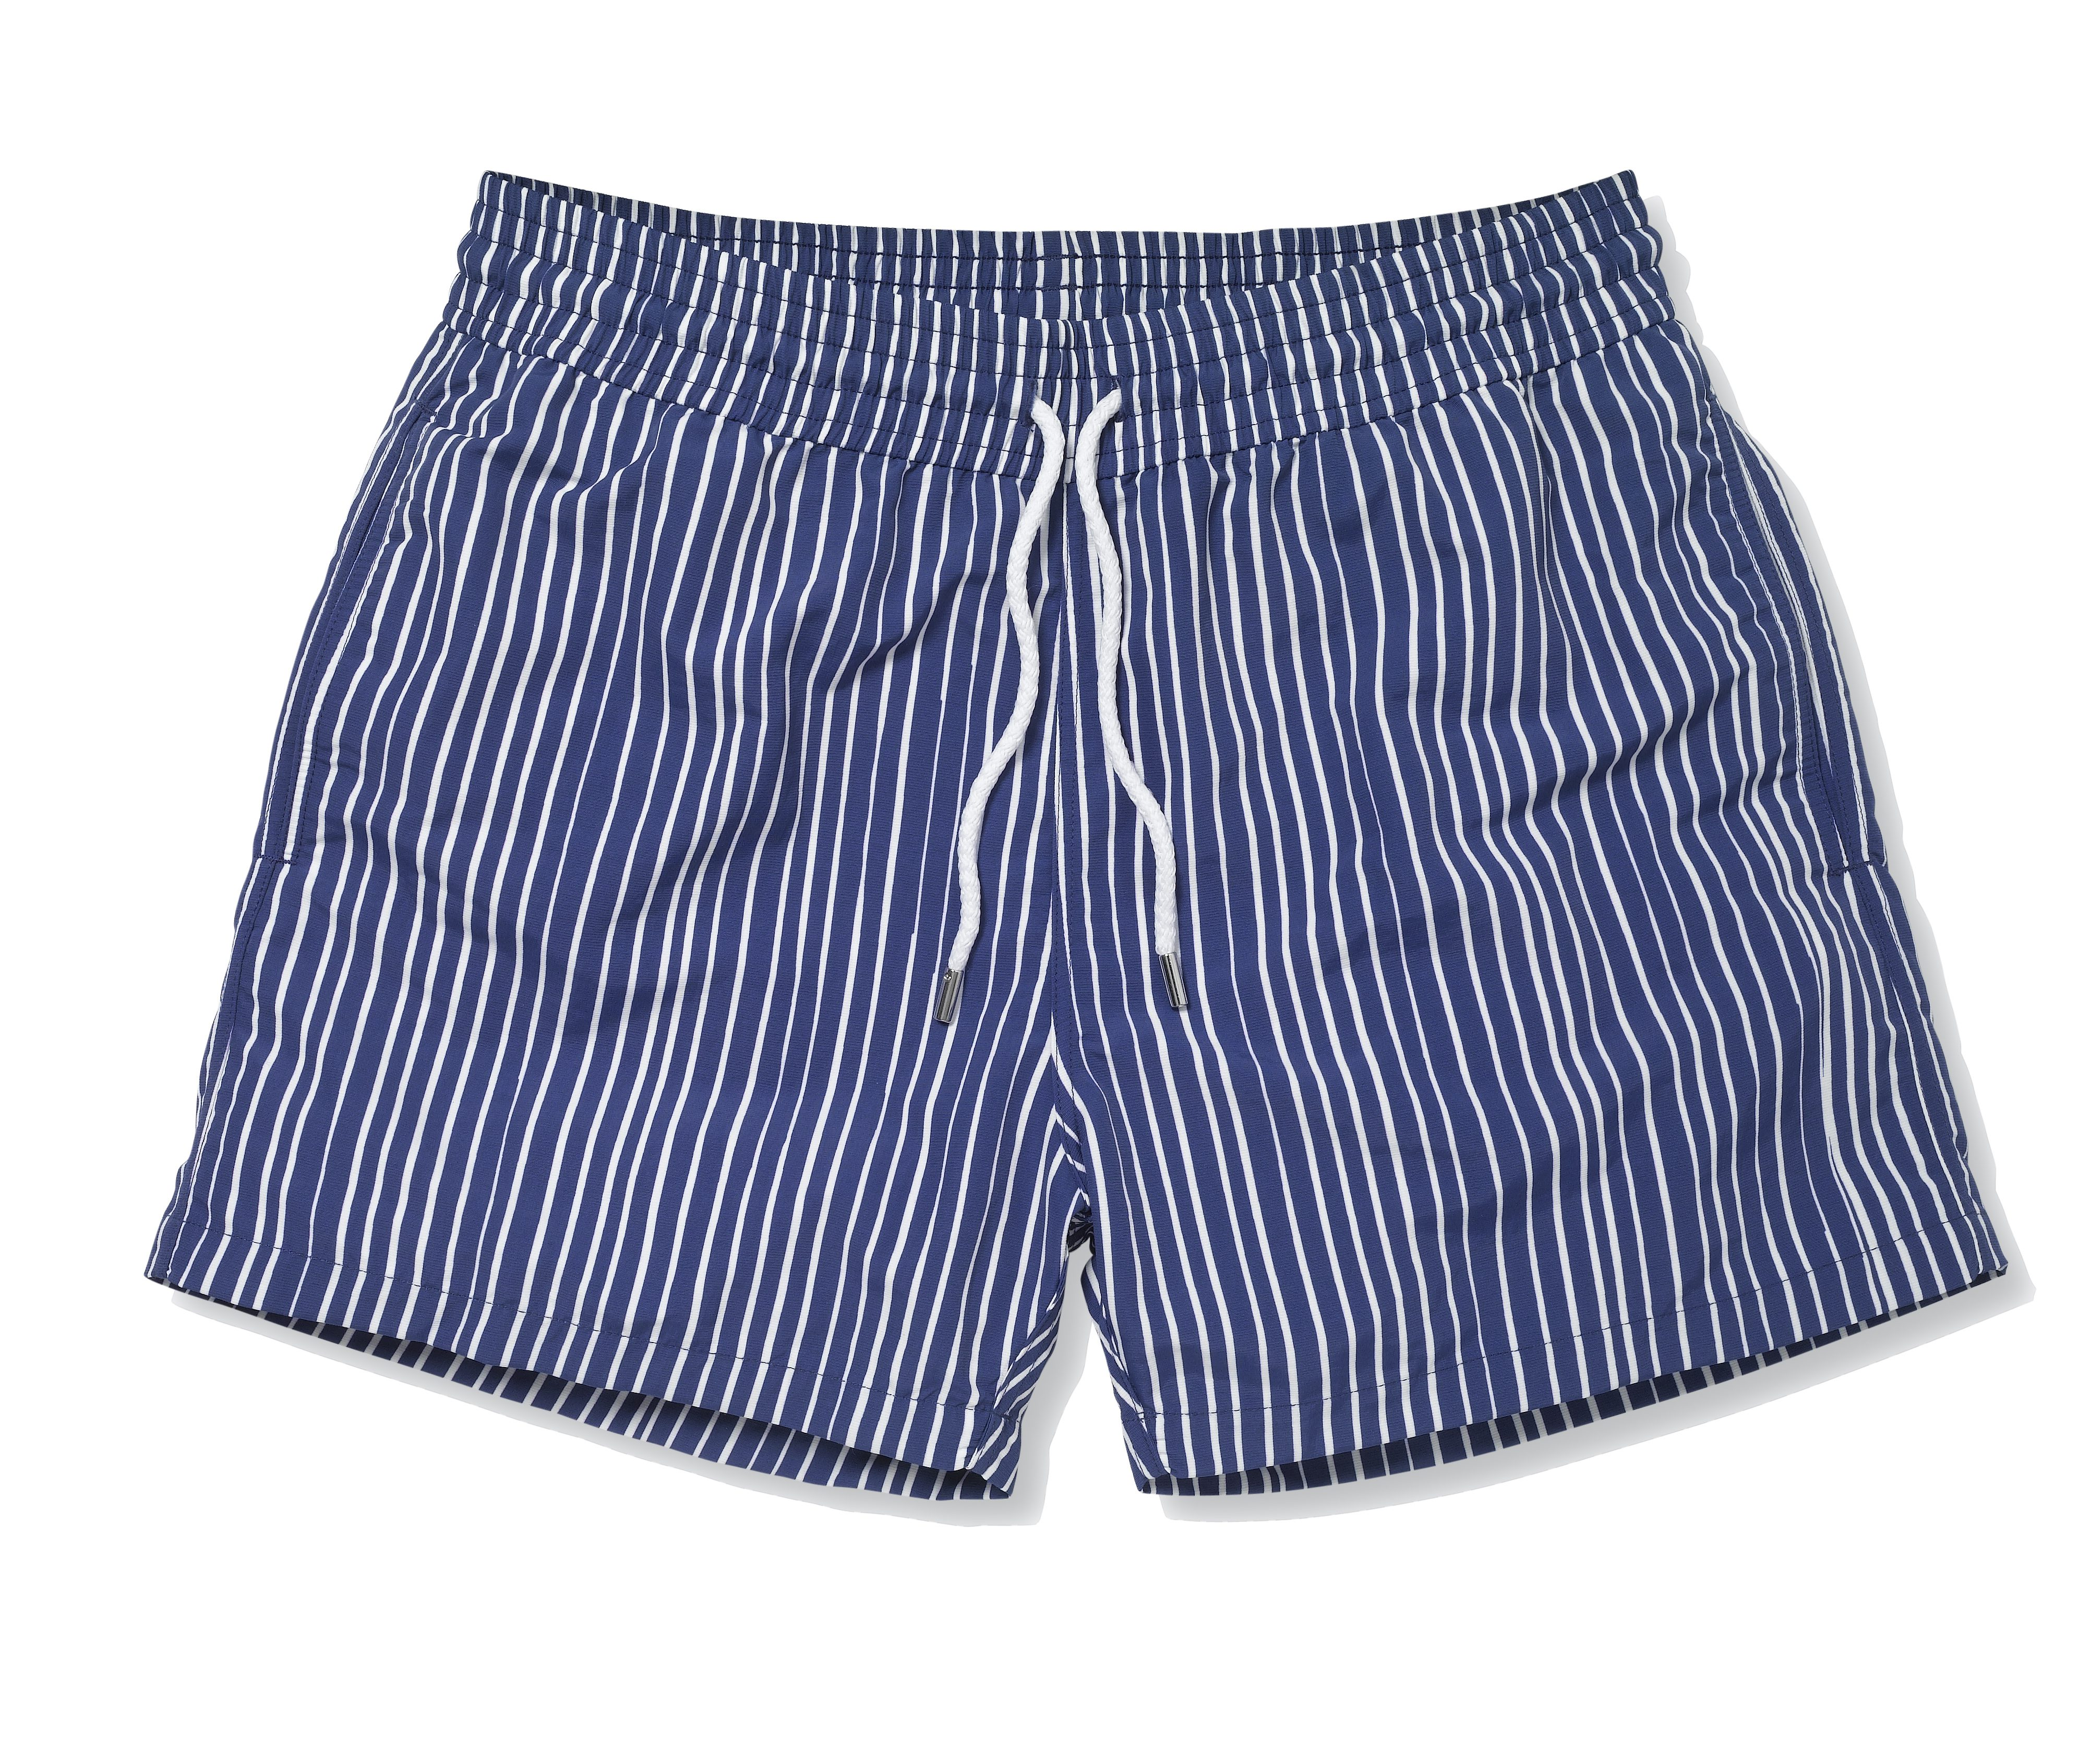 Sports Shorts Tracos Large Navy White.jpg